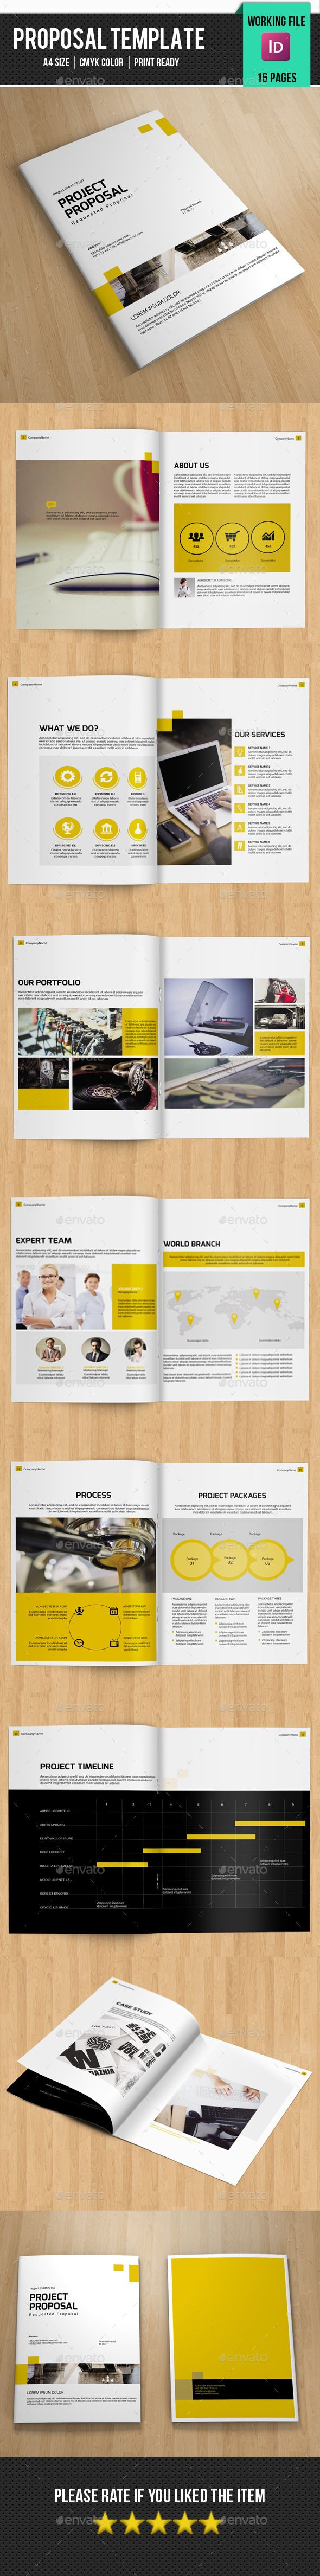 Business Project Proposal Template #design Download: http://graphicriver.net/item/business-project-proposal-templatev280/12176091?ref=ksioks